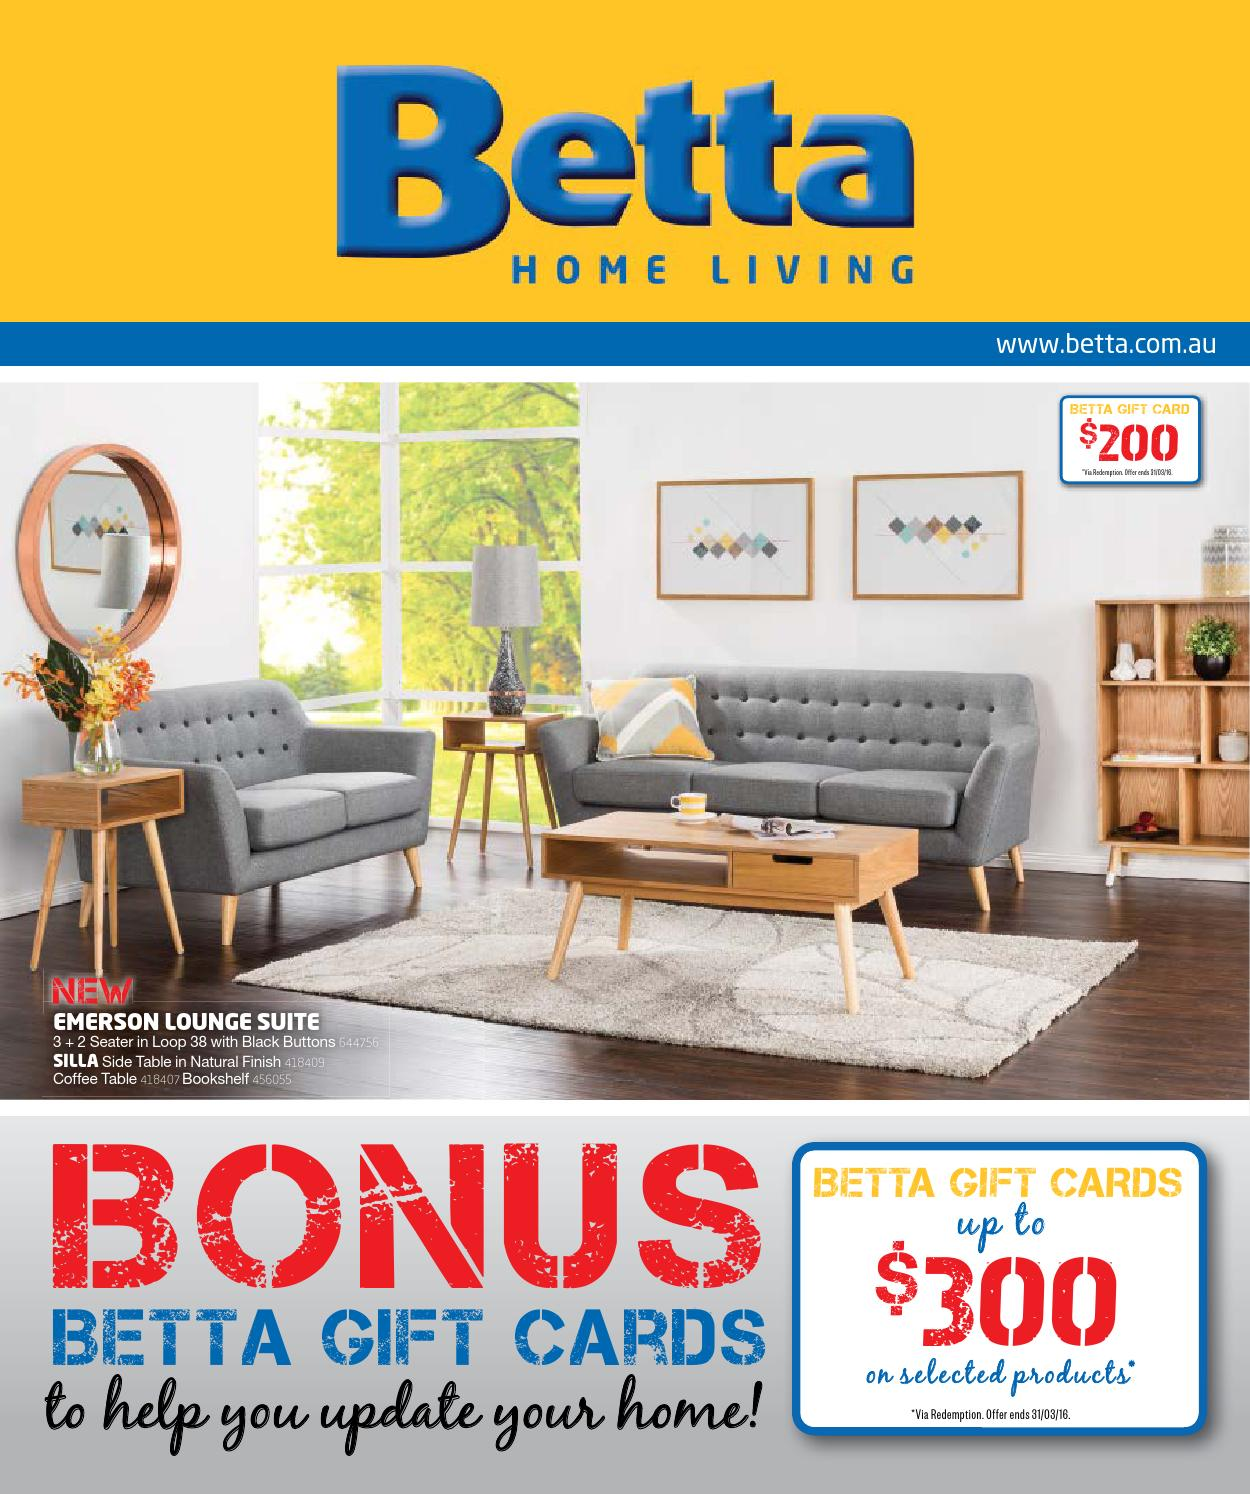 Betta Home Living March Furniture Catalogue 2016 By Betta Home Living    Issuu